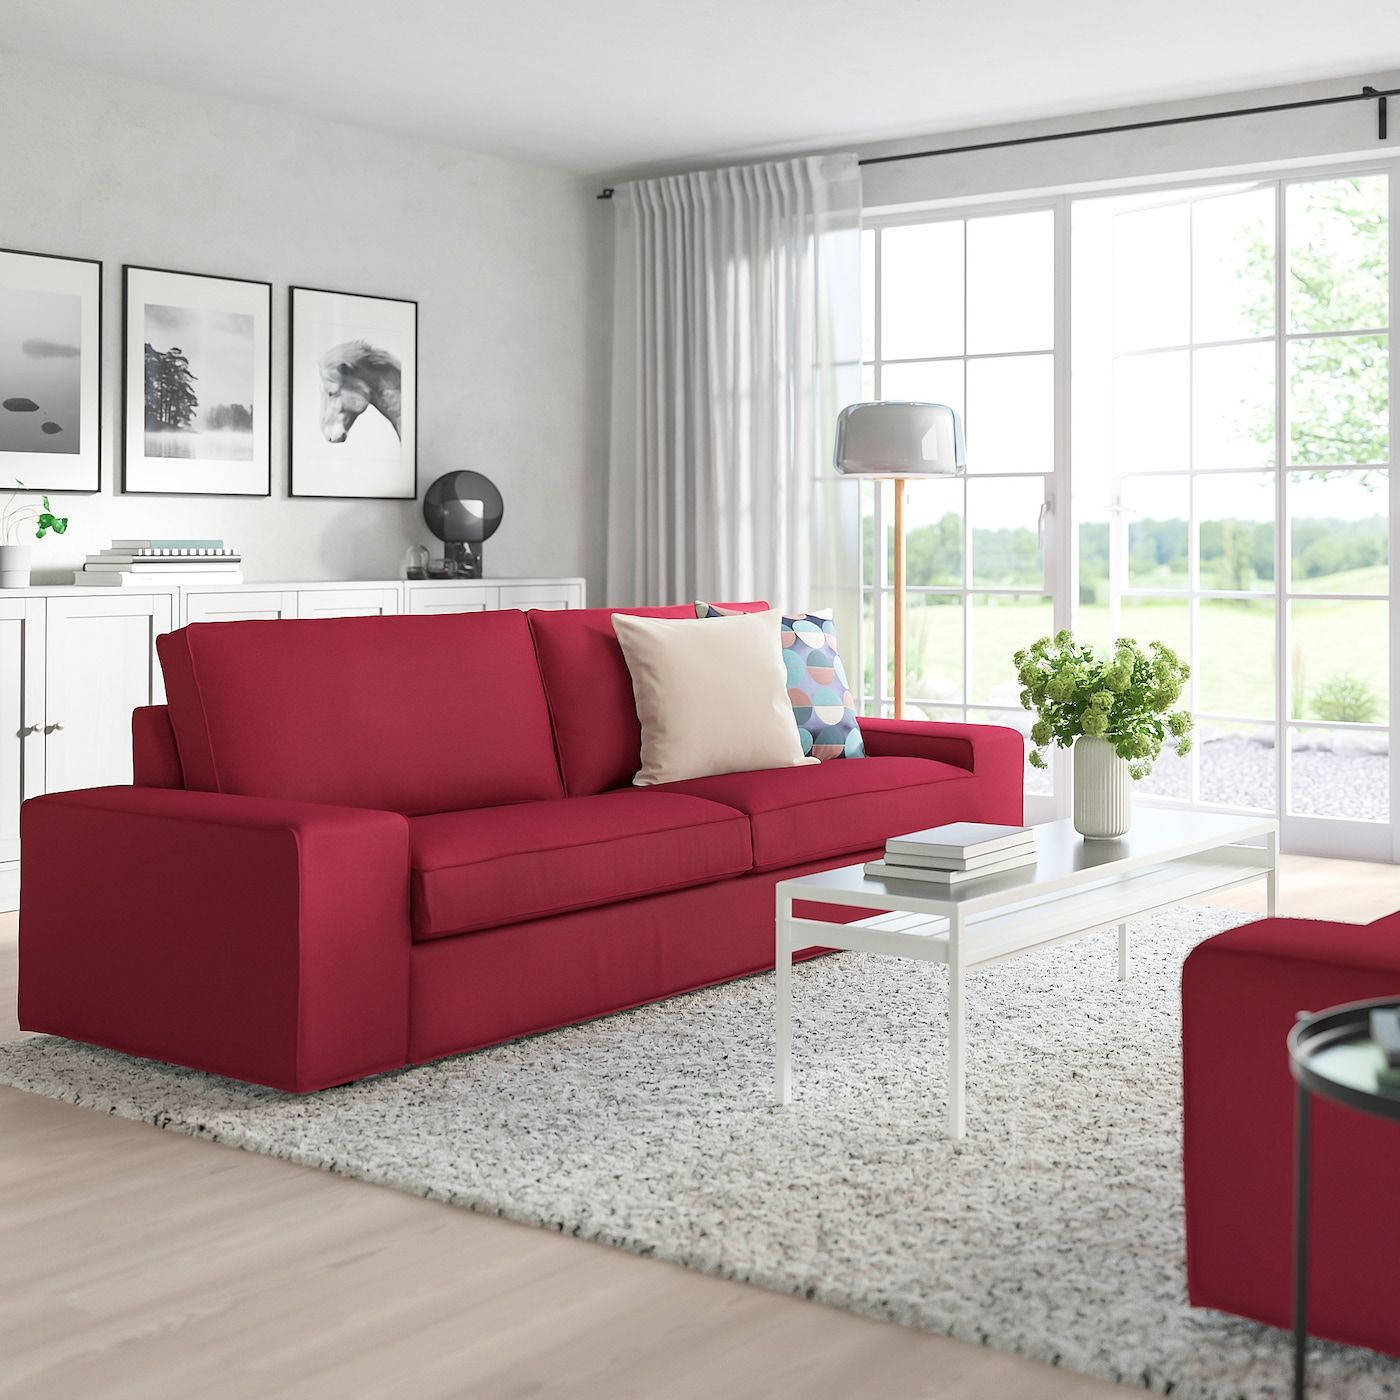 kivik sofa  orrsta red  ikea  red couch living room